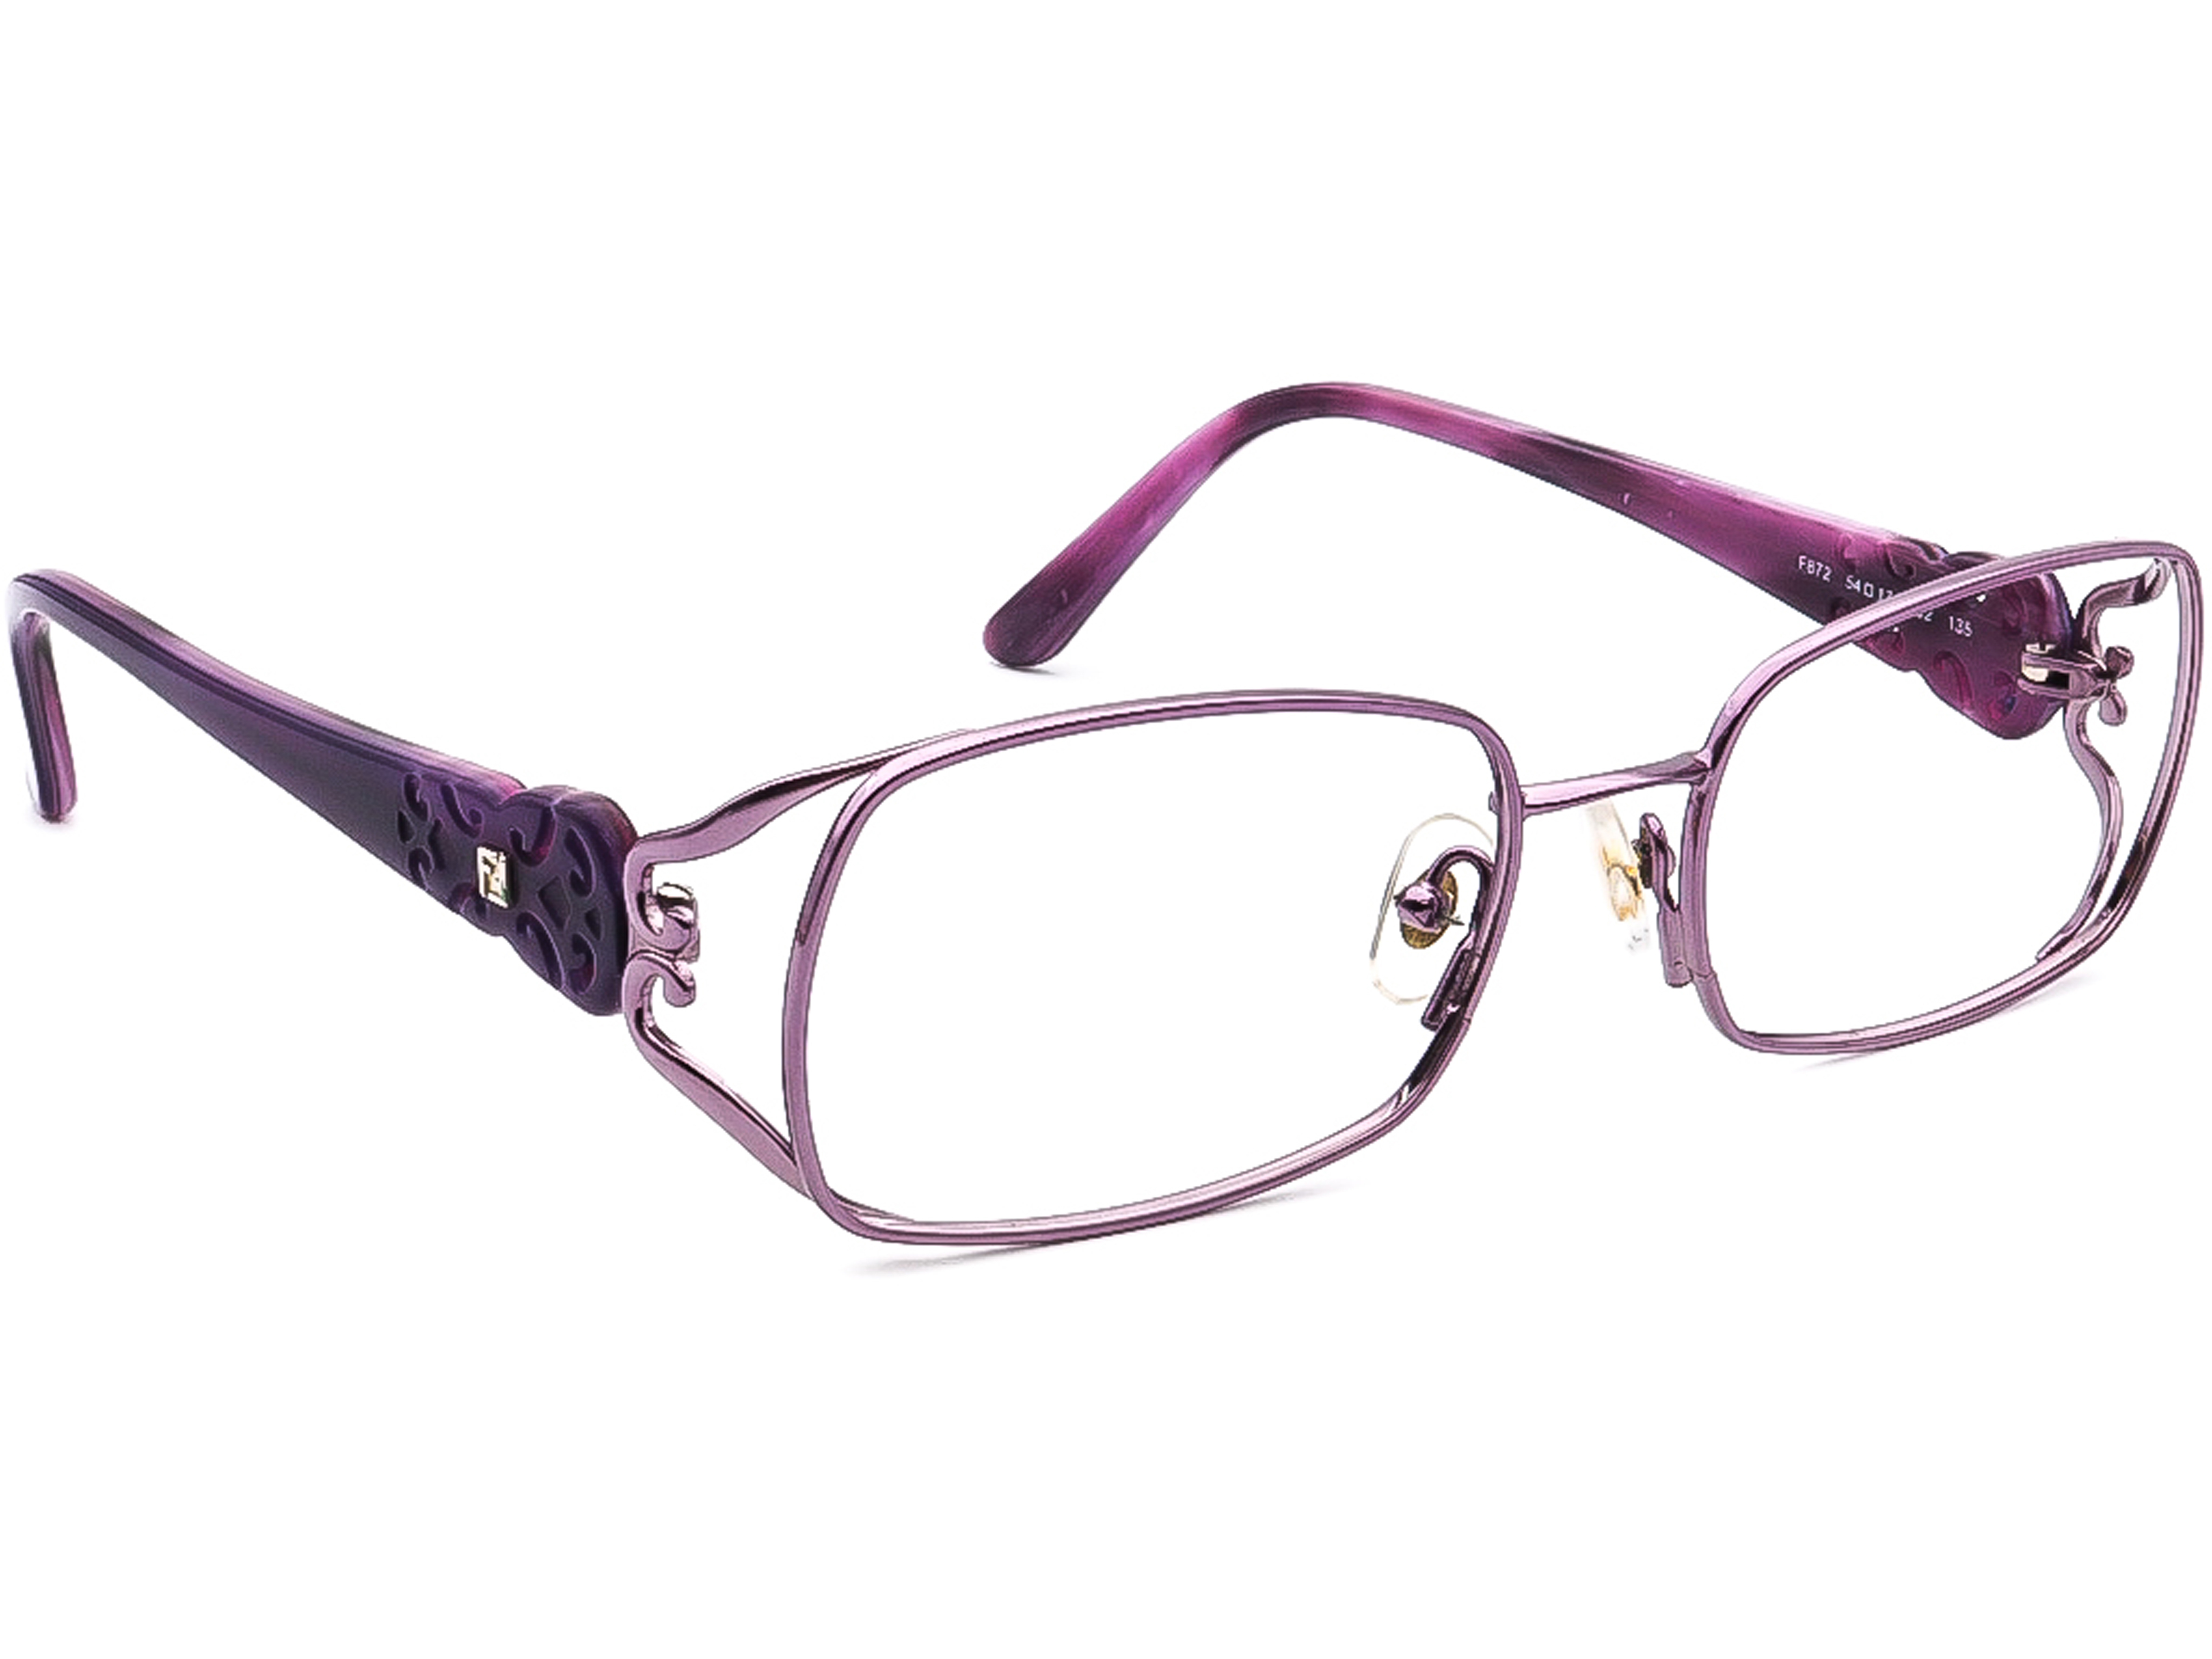 Fendi F872 532 Eyeglasses